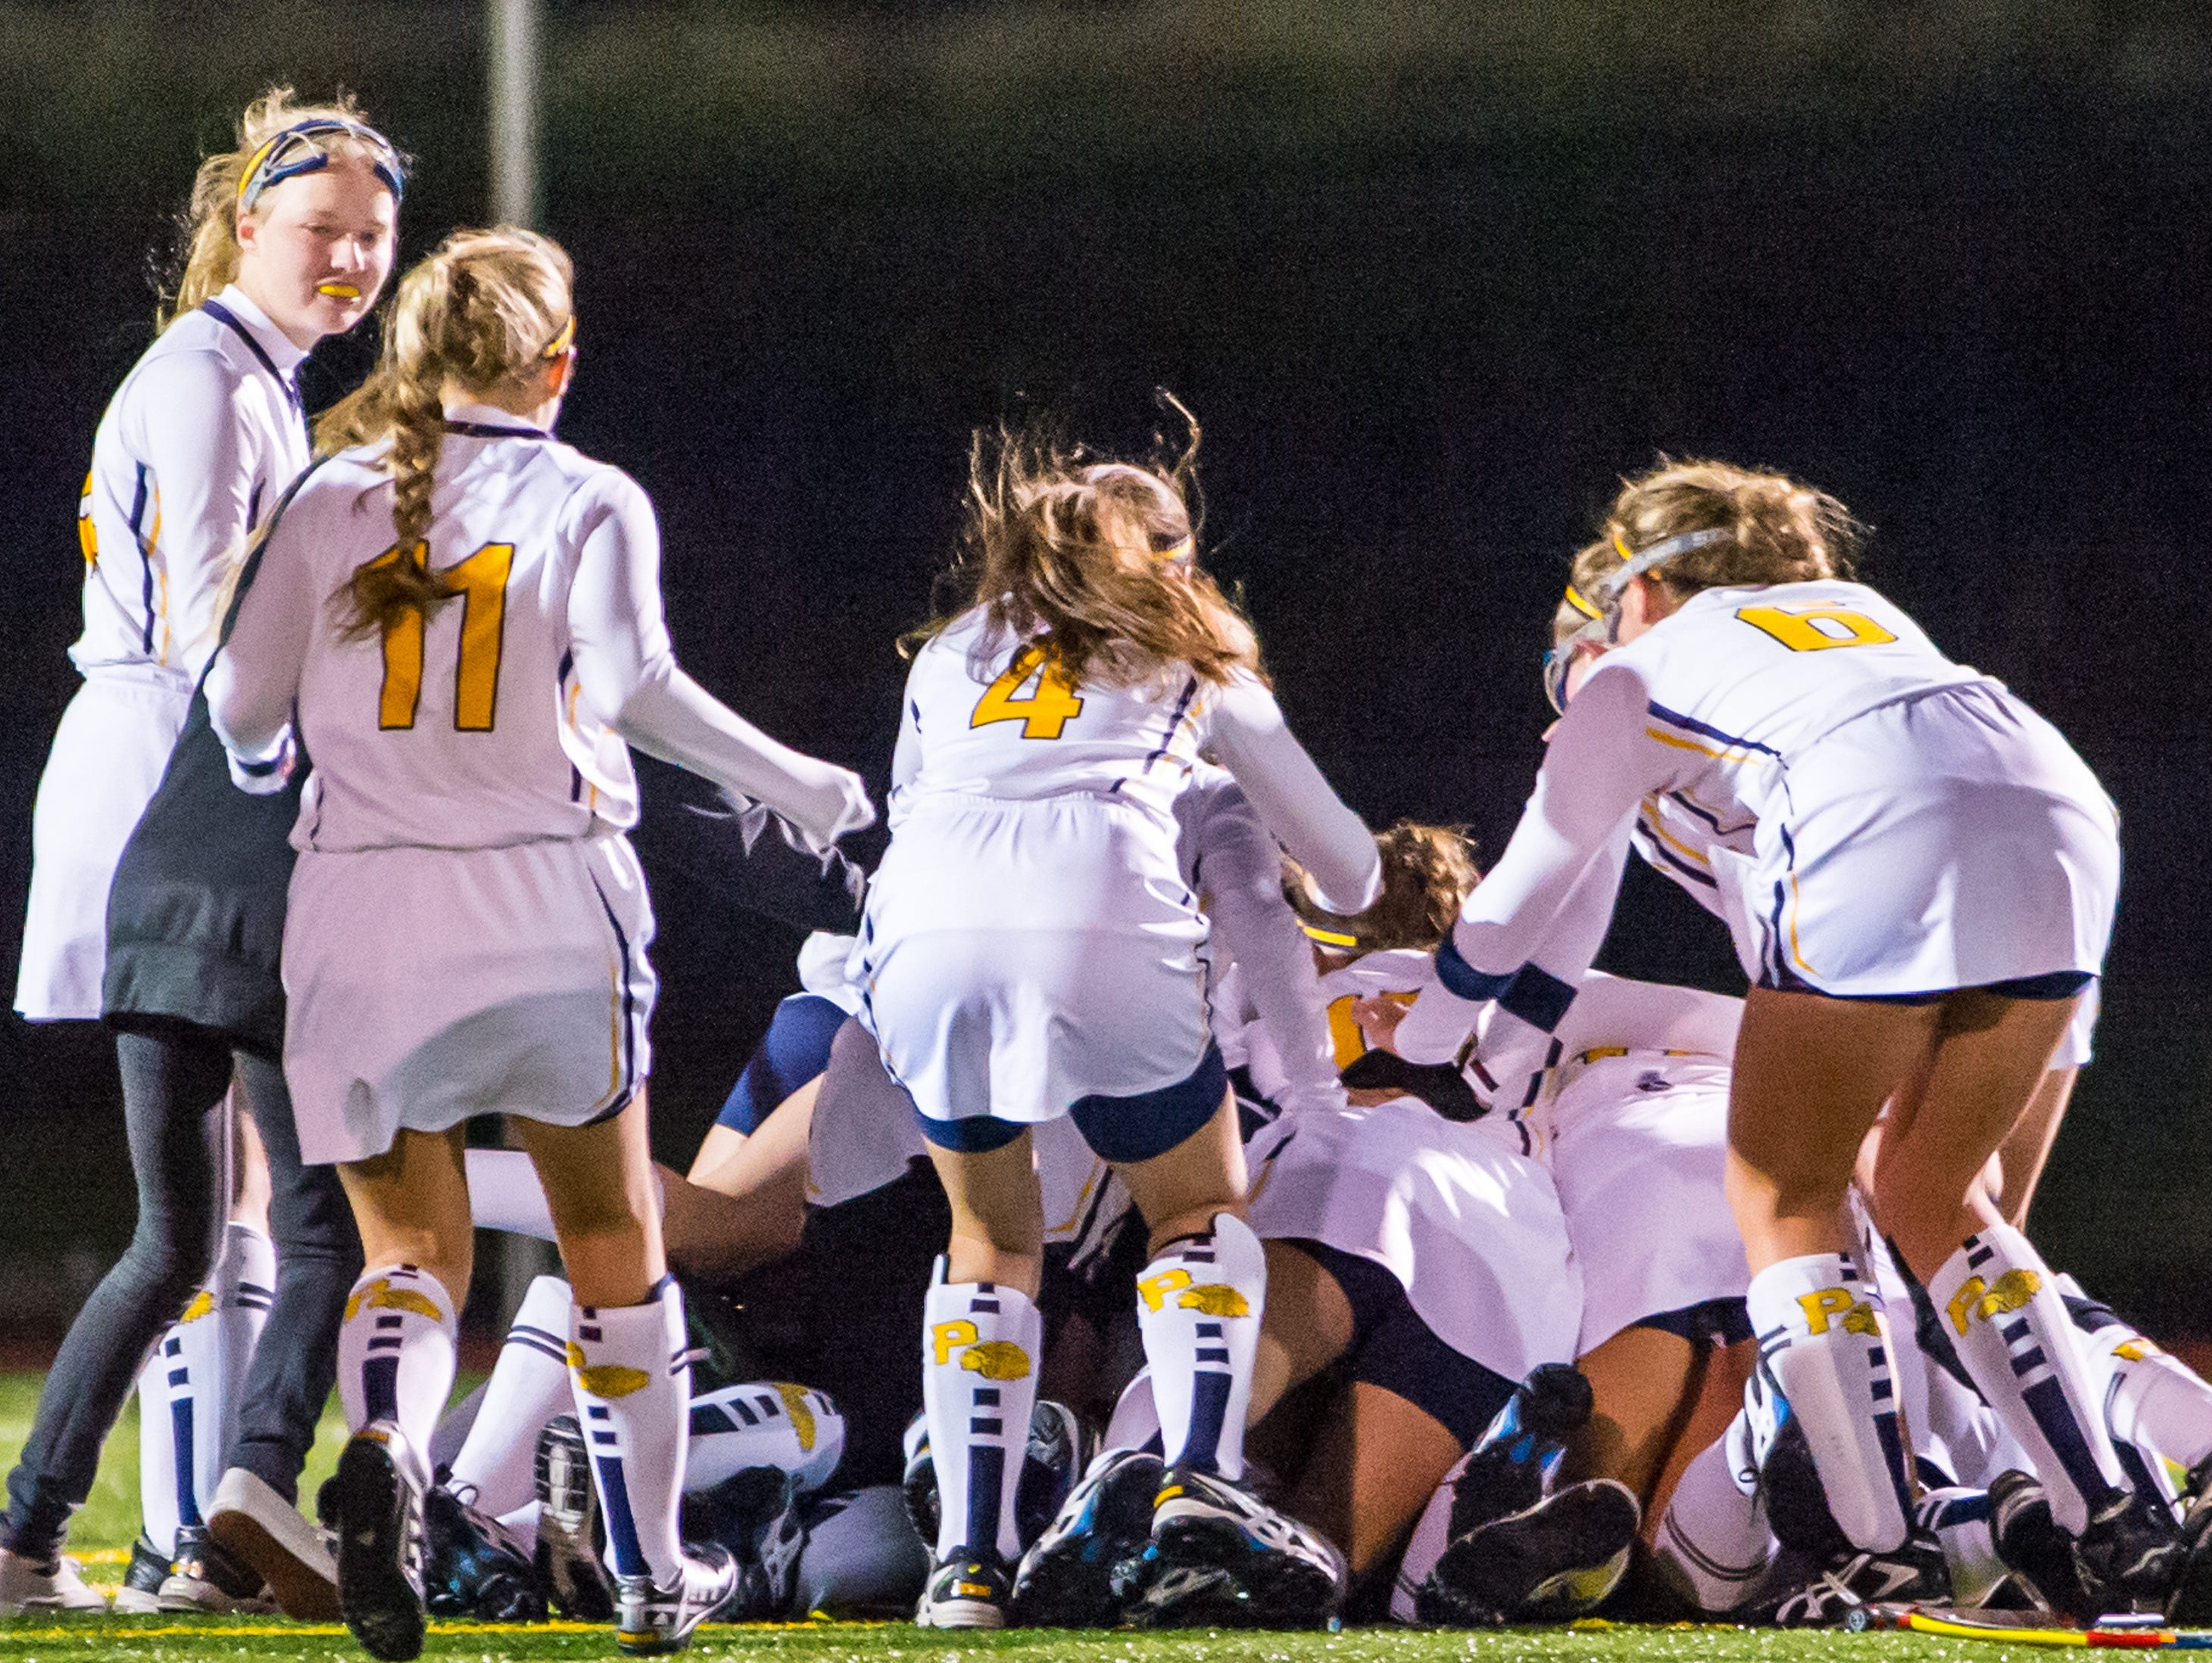 Pocomoke celebrates winning the MPSSSAA 1A State Finals on Saturday evening at Washington College in Chestertown